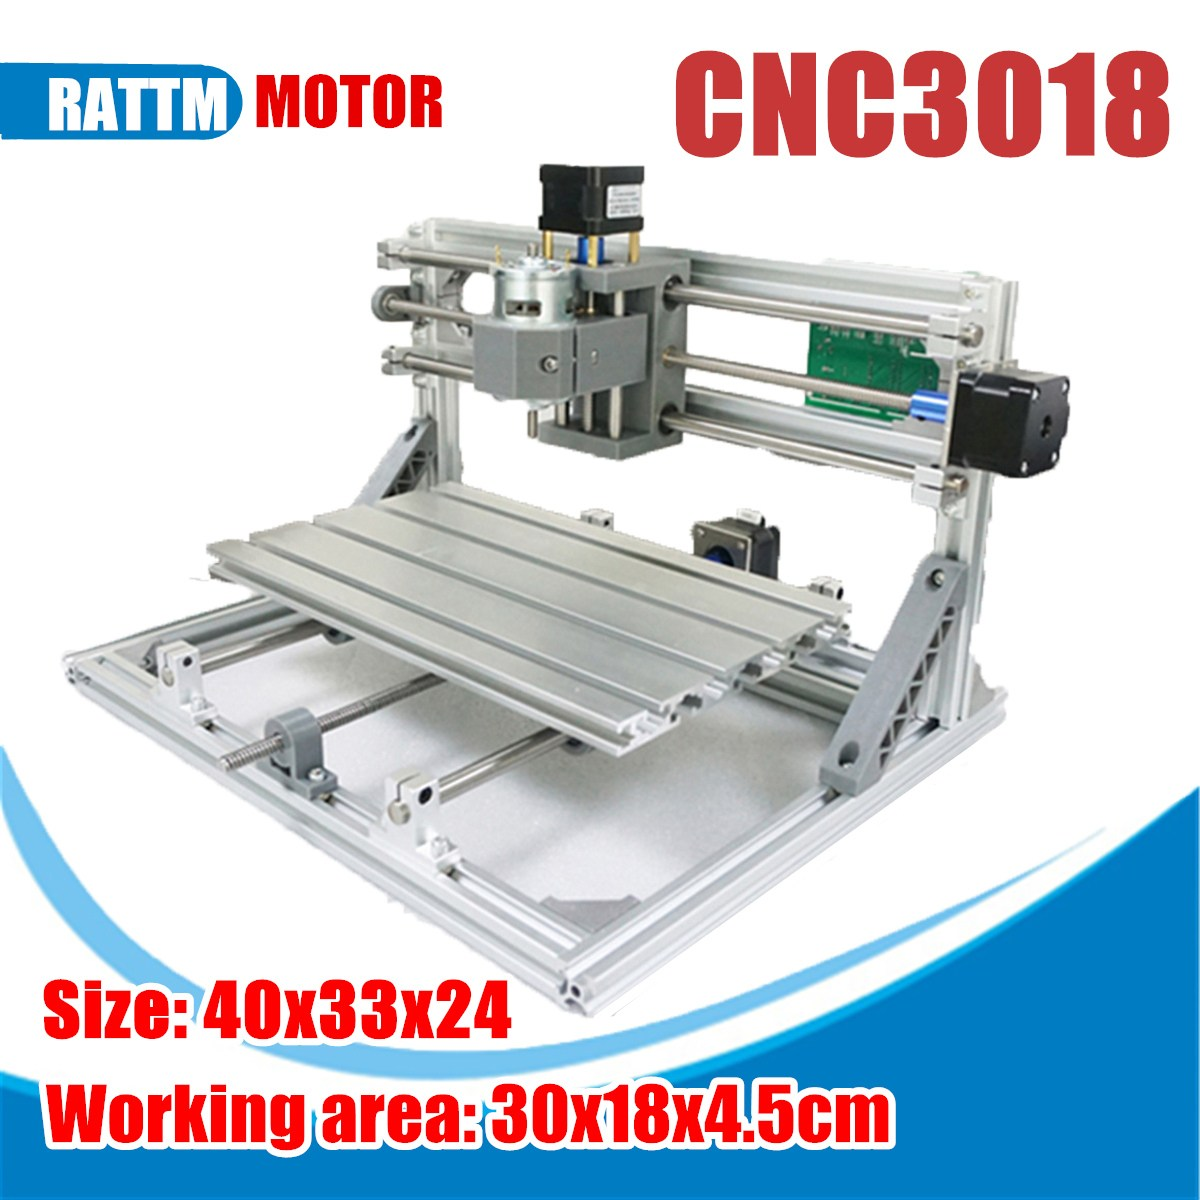 3 Axis 3018 ER11 GRBL Control DIY Mini CNC Router Laser Machine Pcb Pvc Milling Wood Router Wood Router Laser Engraving 2020 wood router pcb milling machine arduino cnc diy wood carving laser engraving machine pvc engraver grbl cnc router fit er11